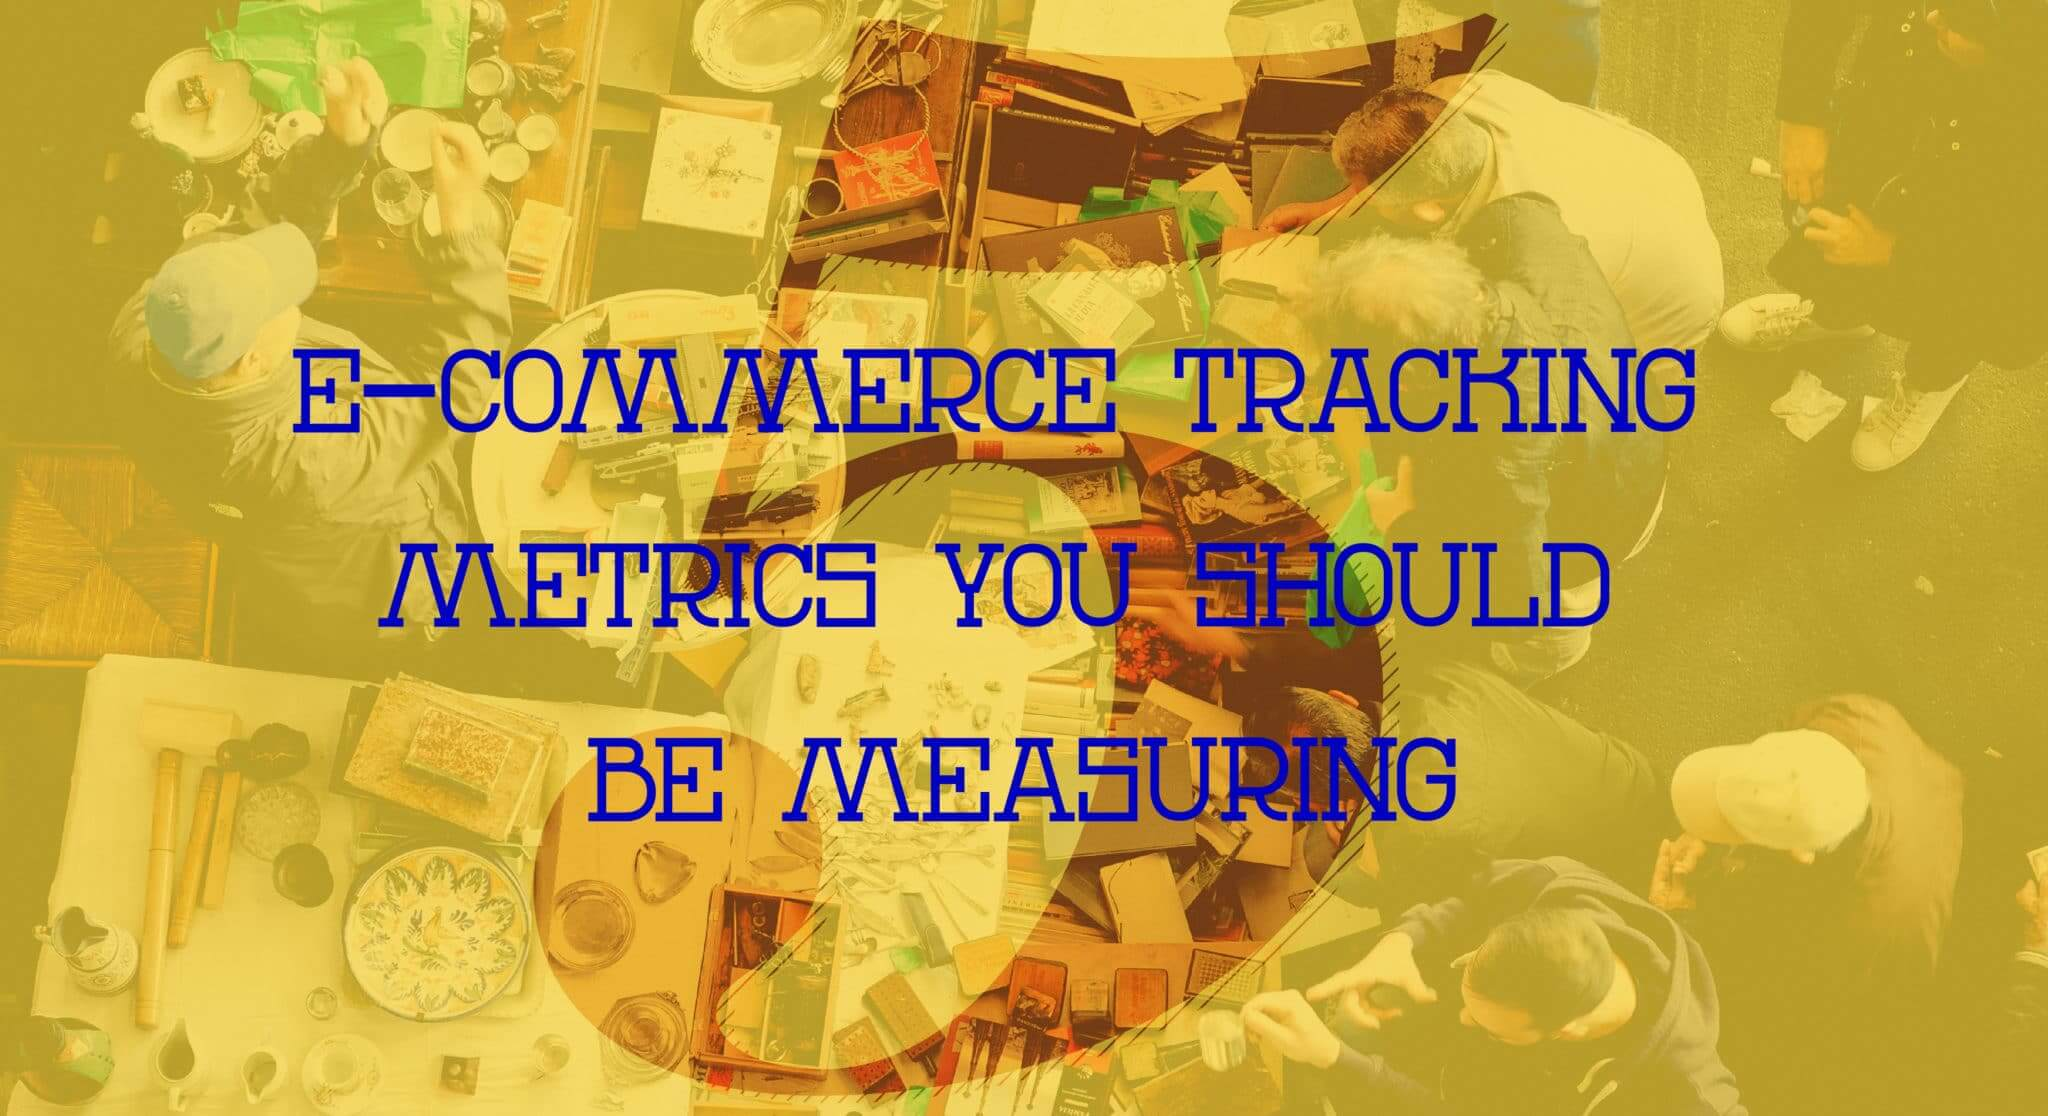 5 E-Commerce Tracking Metrics You Should Be Measuring